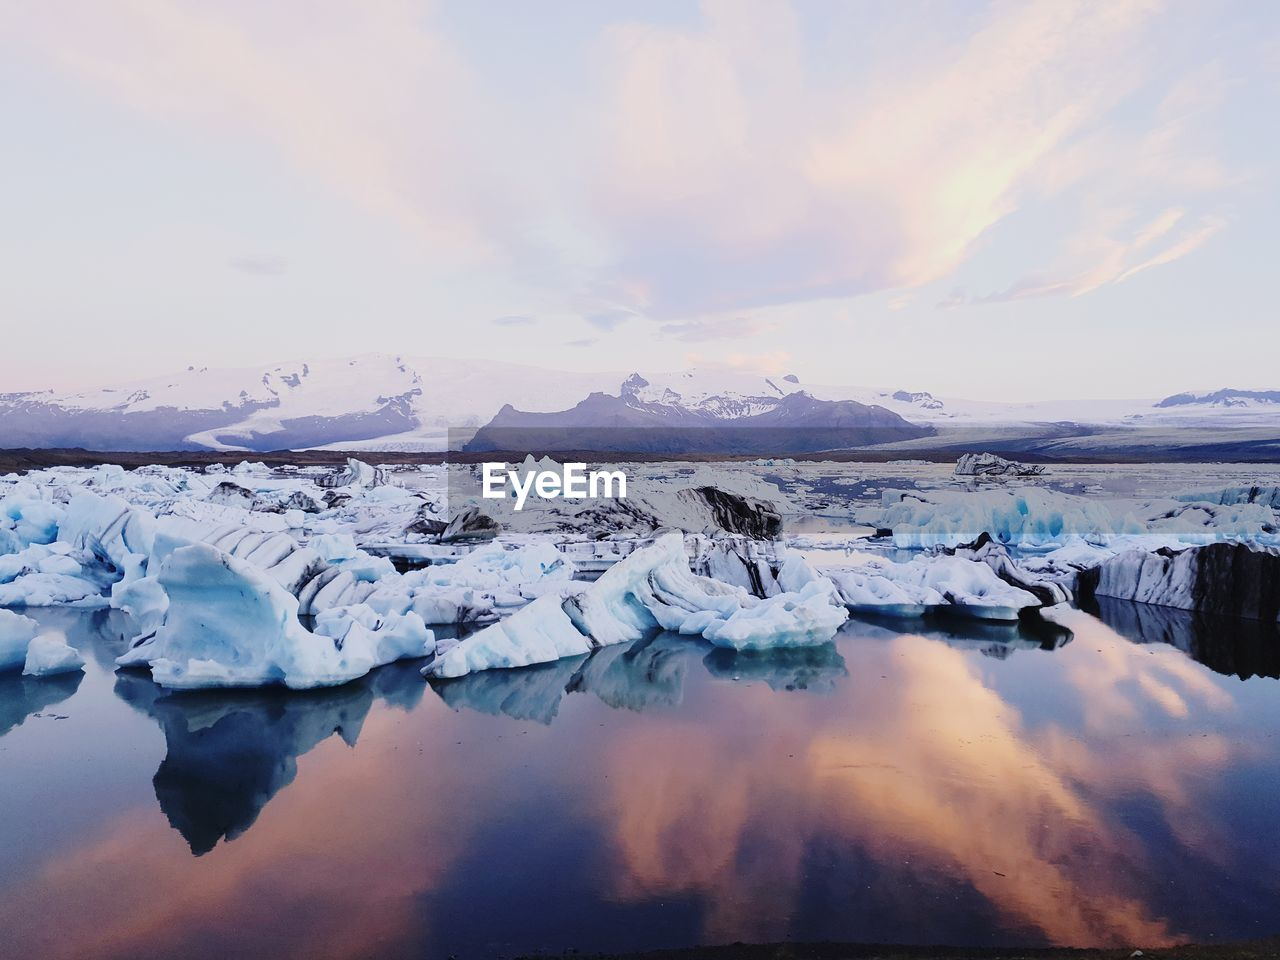 cold temperature, ice, water, sky, glacier, beauty in nature, scenics - nature, winter, cloud - sky, environment, tranquility, tranquil scene, iceberg, frozen, landscape, sunset, idyllic, reflection, no people, floating on water, snowcapped mountain, melting, lagoon